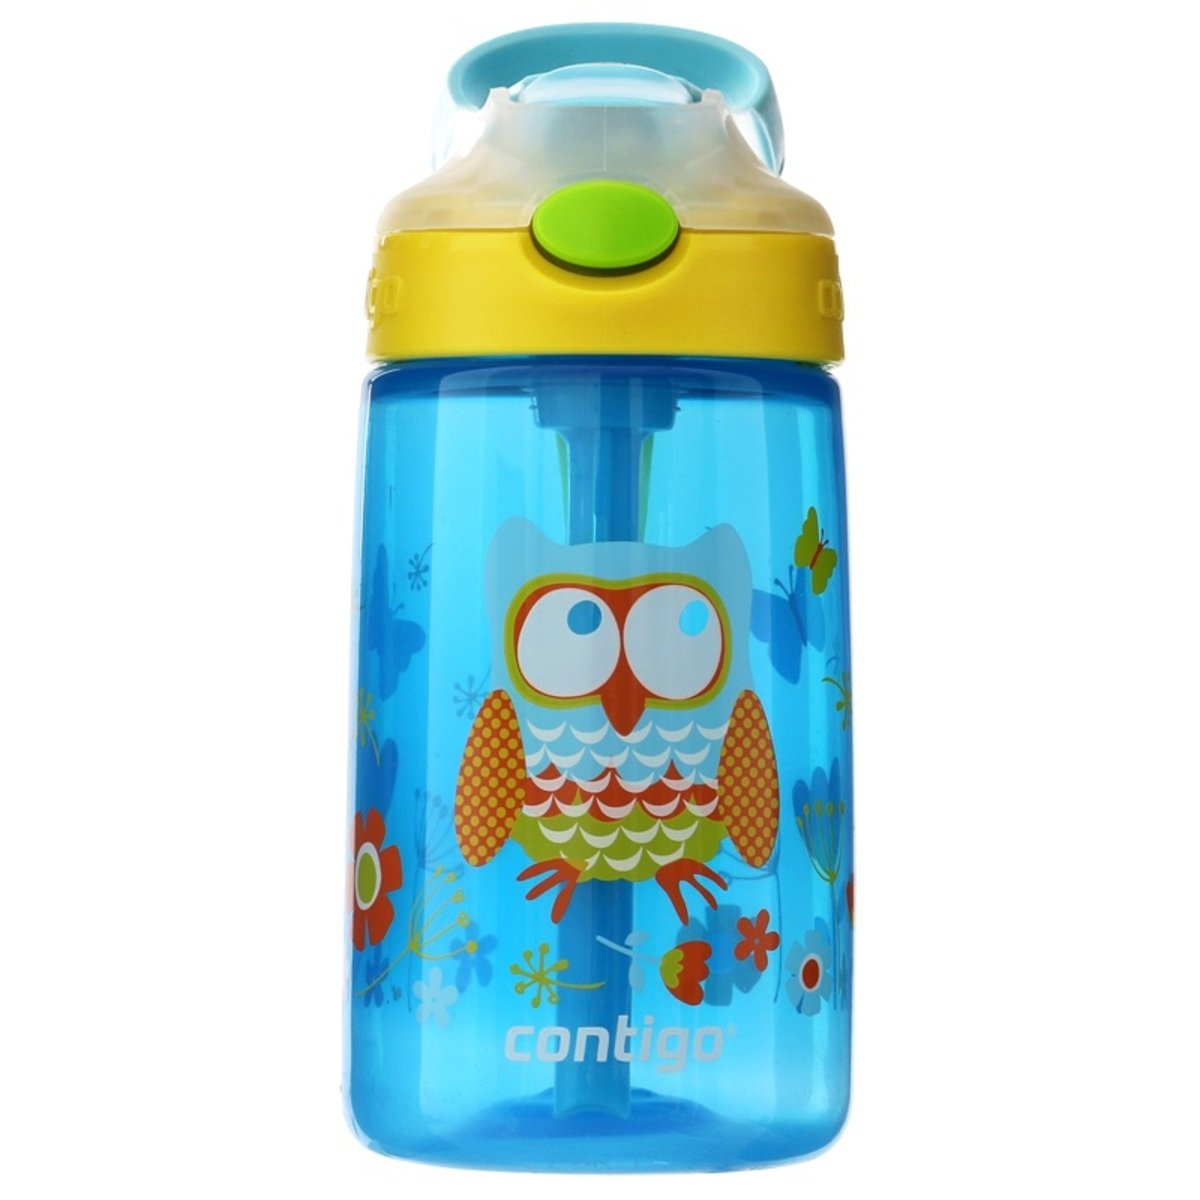 410ml Gizmo Autospout Bottle - Owl